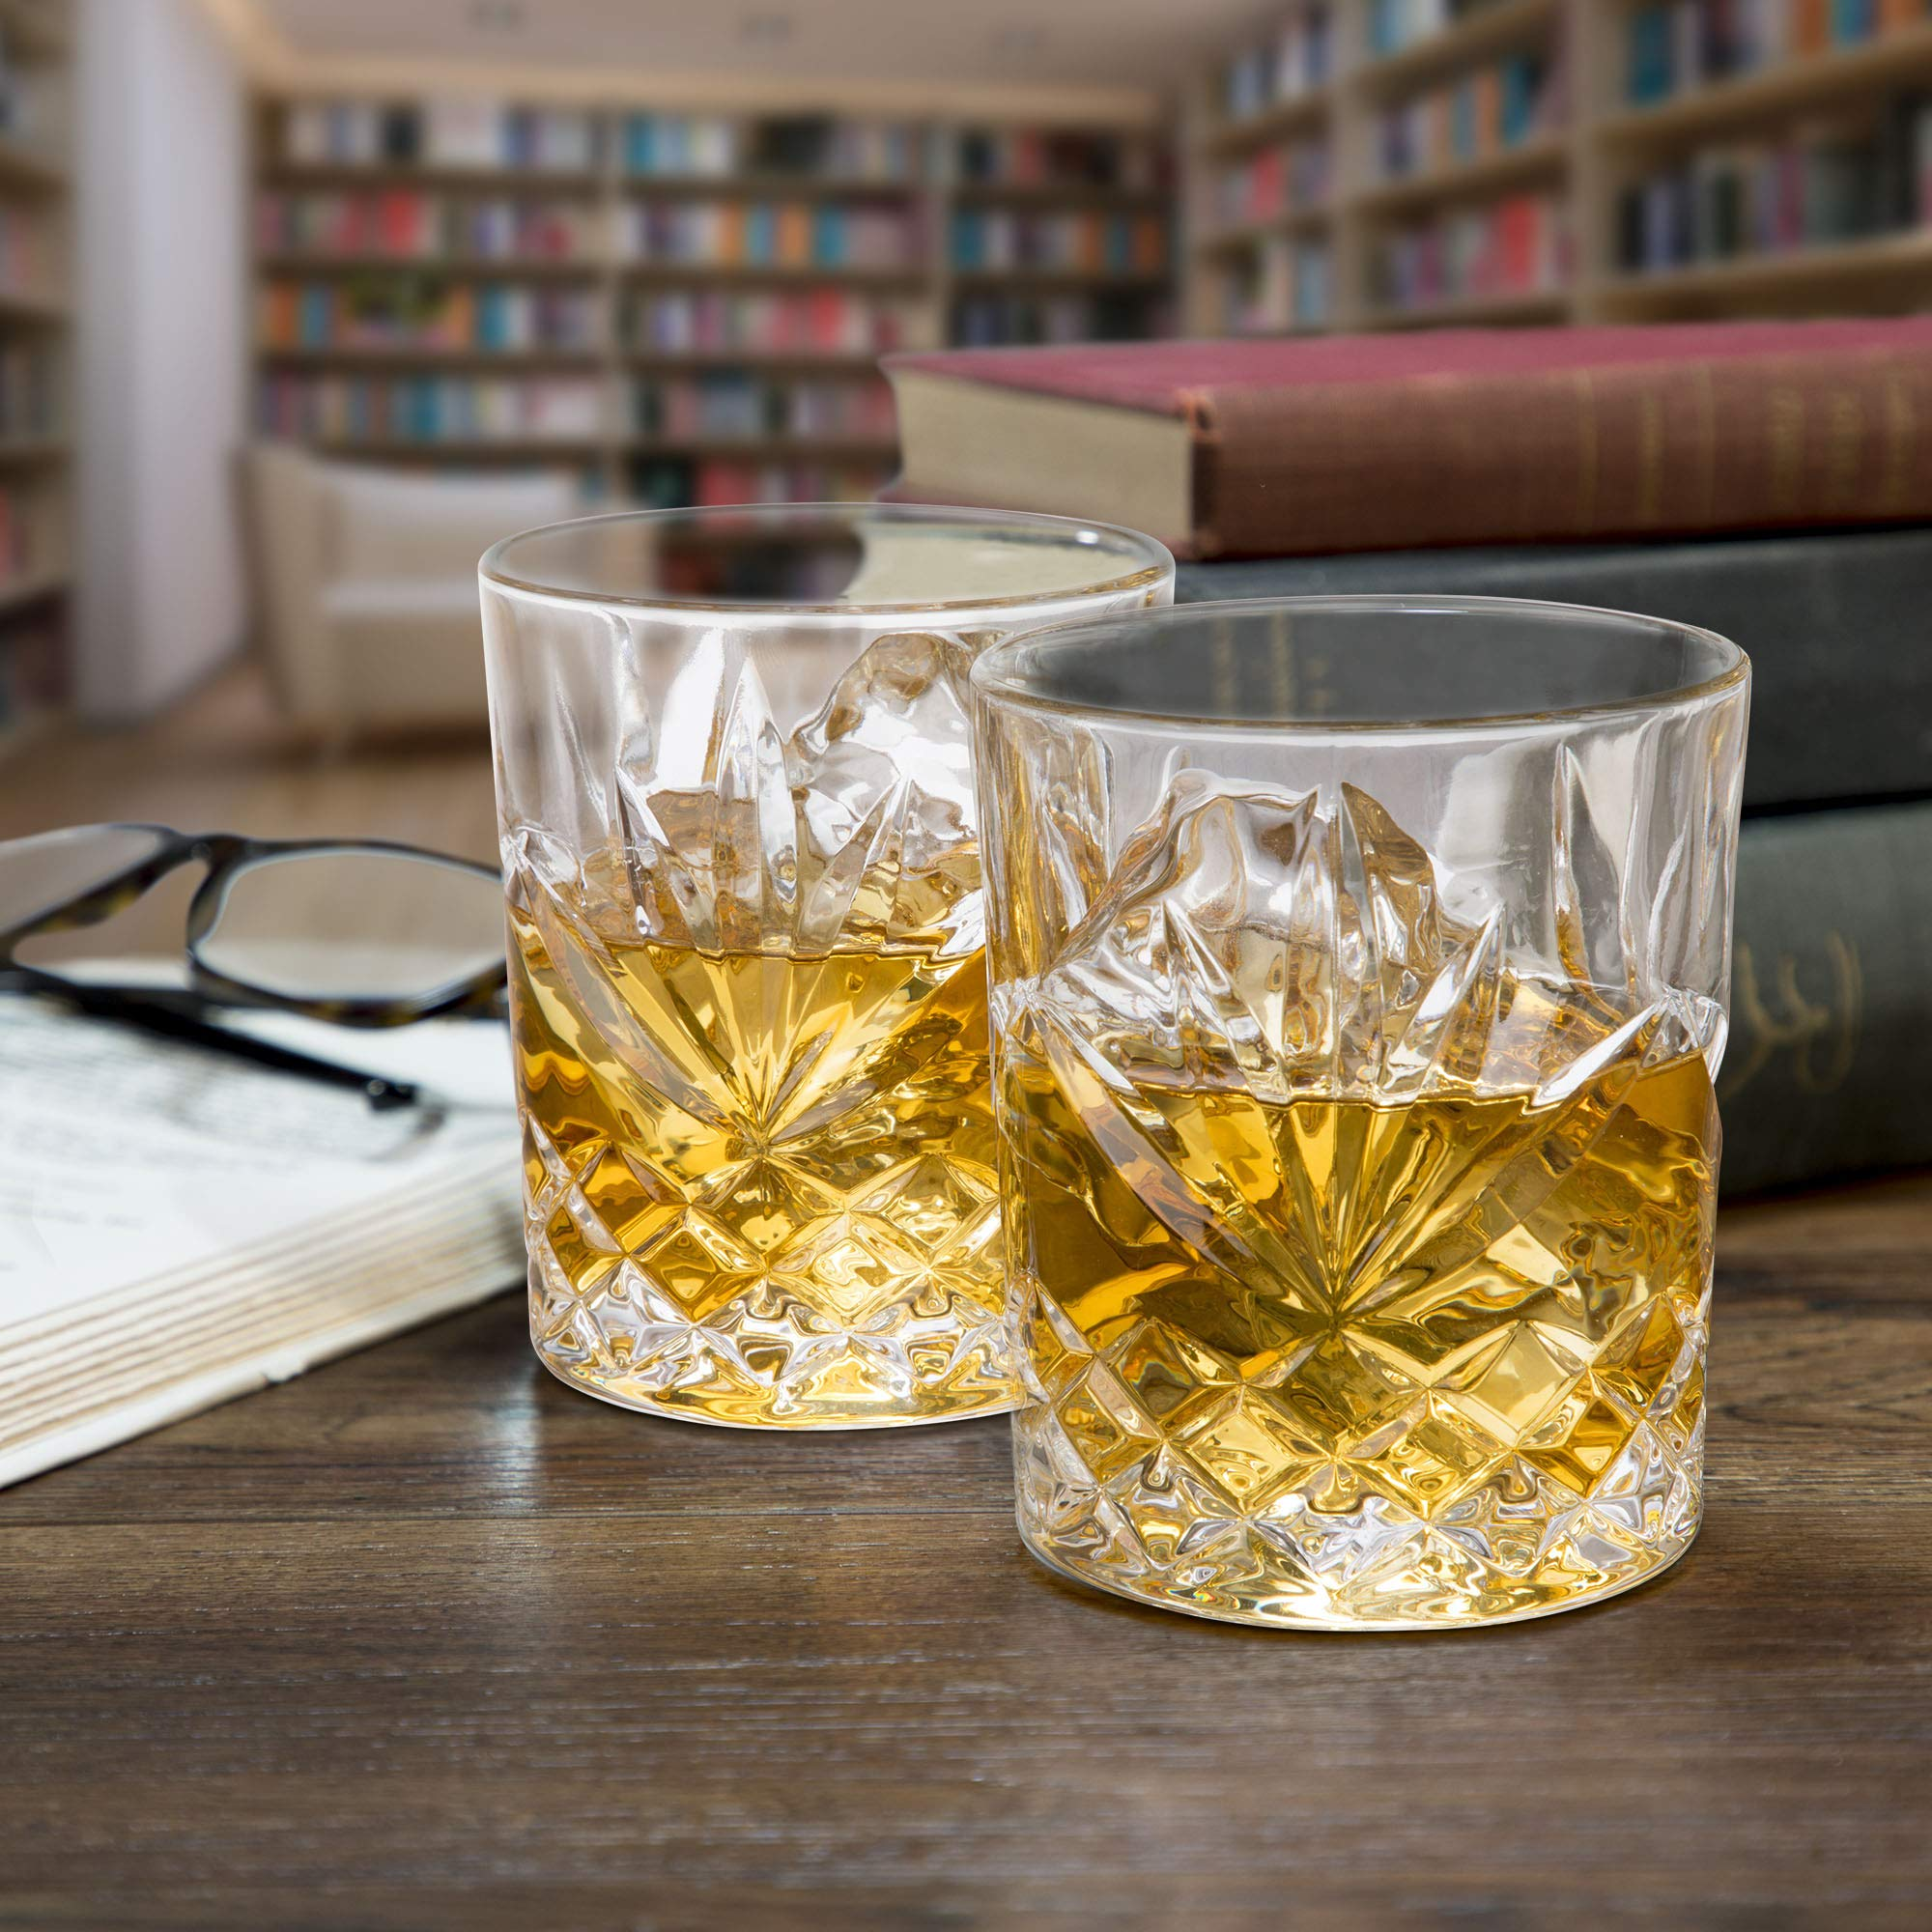 Elegant Whiskey Glass Set of 2 in a Spectacular Gift Box by Regal Trunk & Co. | 10 Oz Old Fashioned Lead Free Whiskey Glasses Set for Whisky Bourbon Scotch or Rum | Perfect Gift | Diamond Cut Design by Regal Trunk & Co.